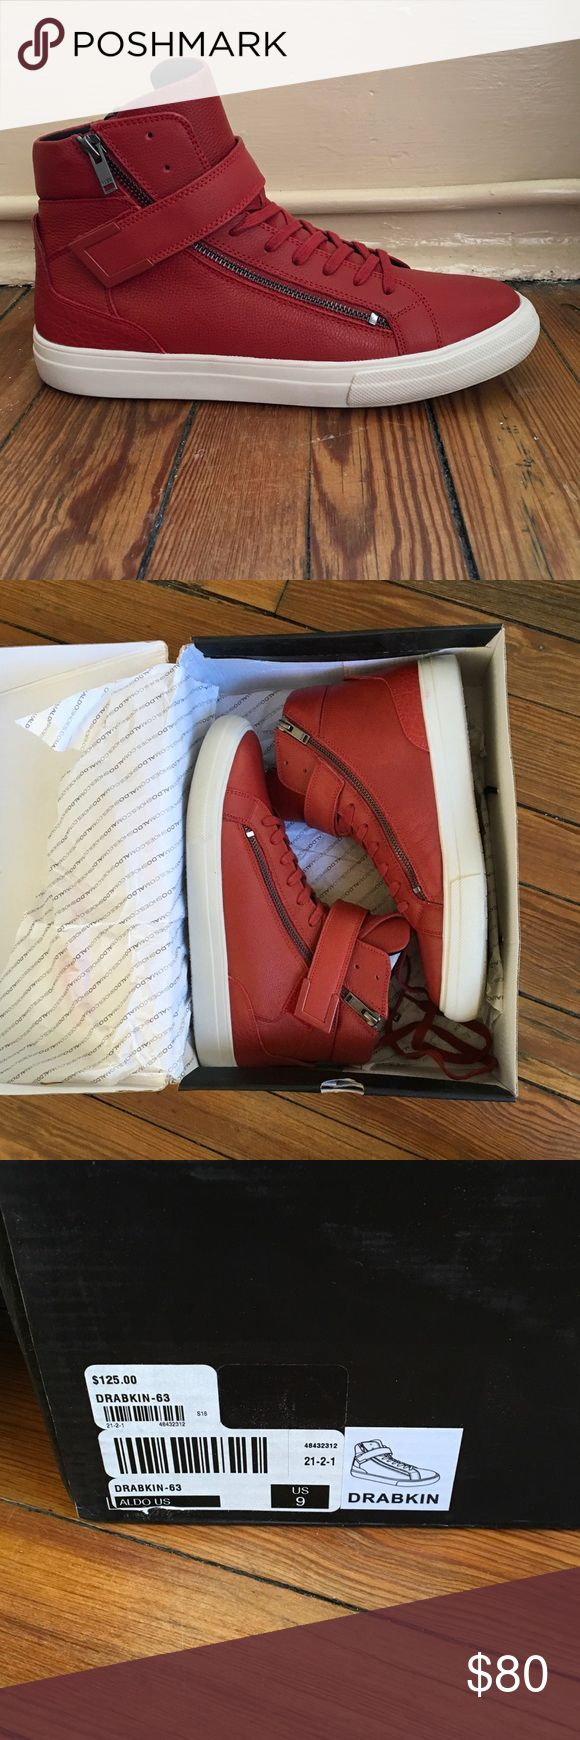 ALDO men's red high top sneaker size 9 NWT New in box. Zippers on both sides. Only worn around the house for 5 minutes. Aldo Shoes Sneakers